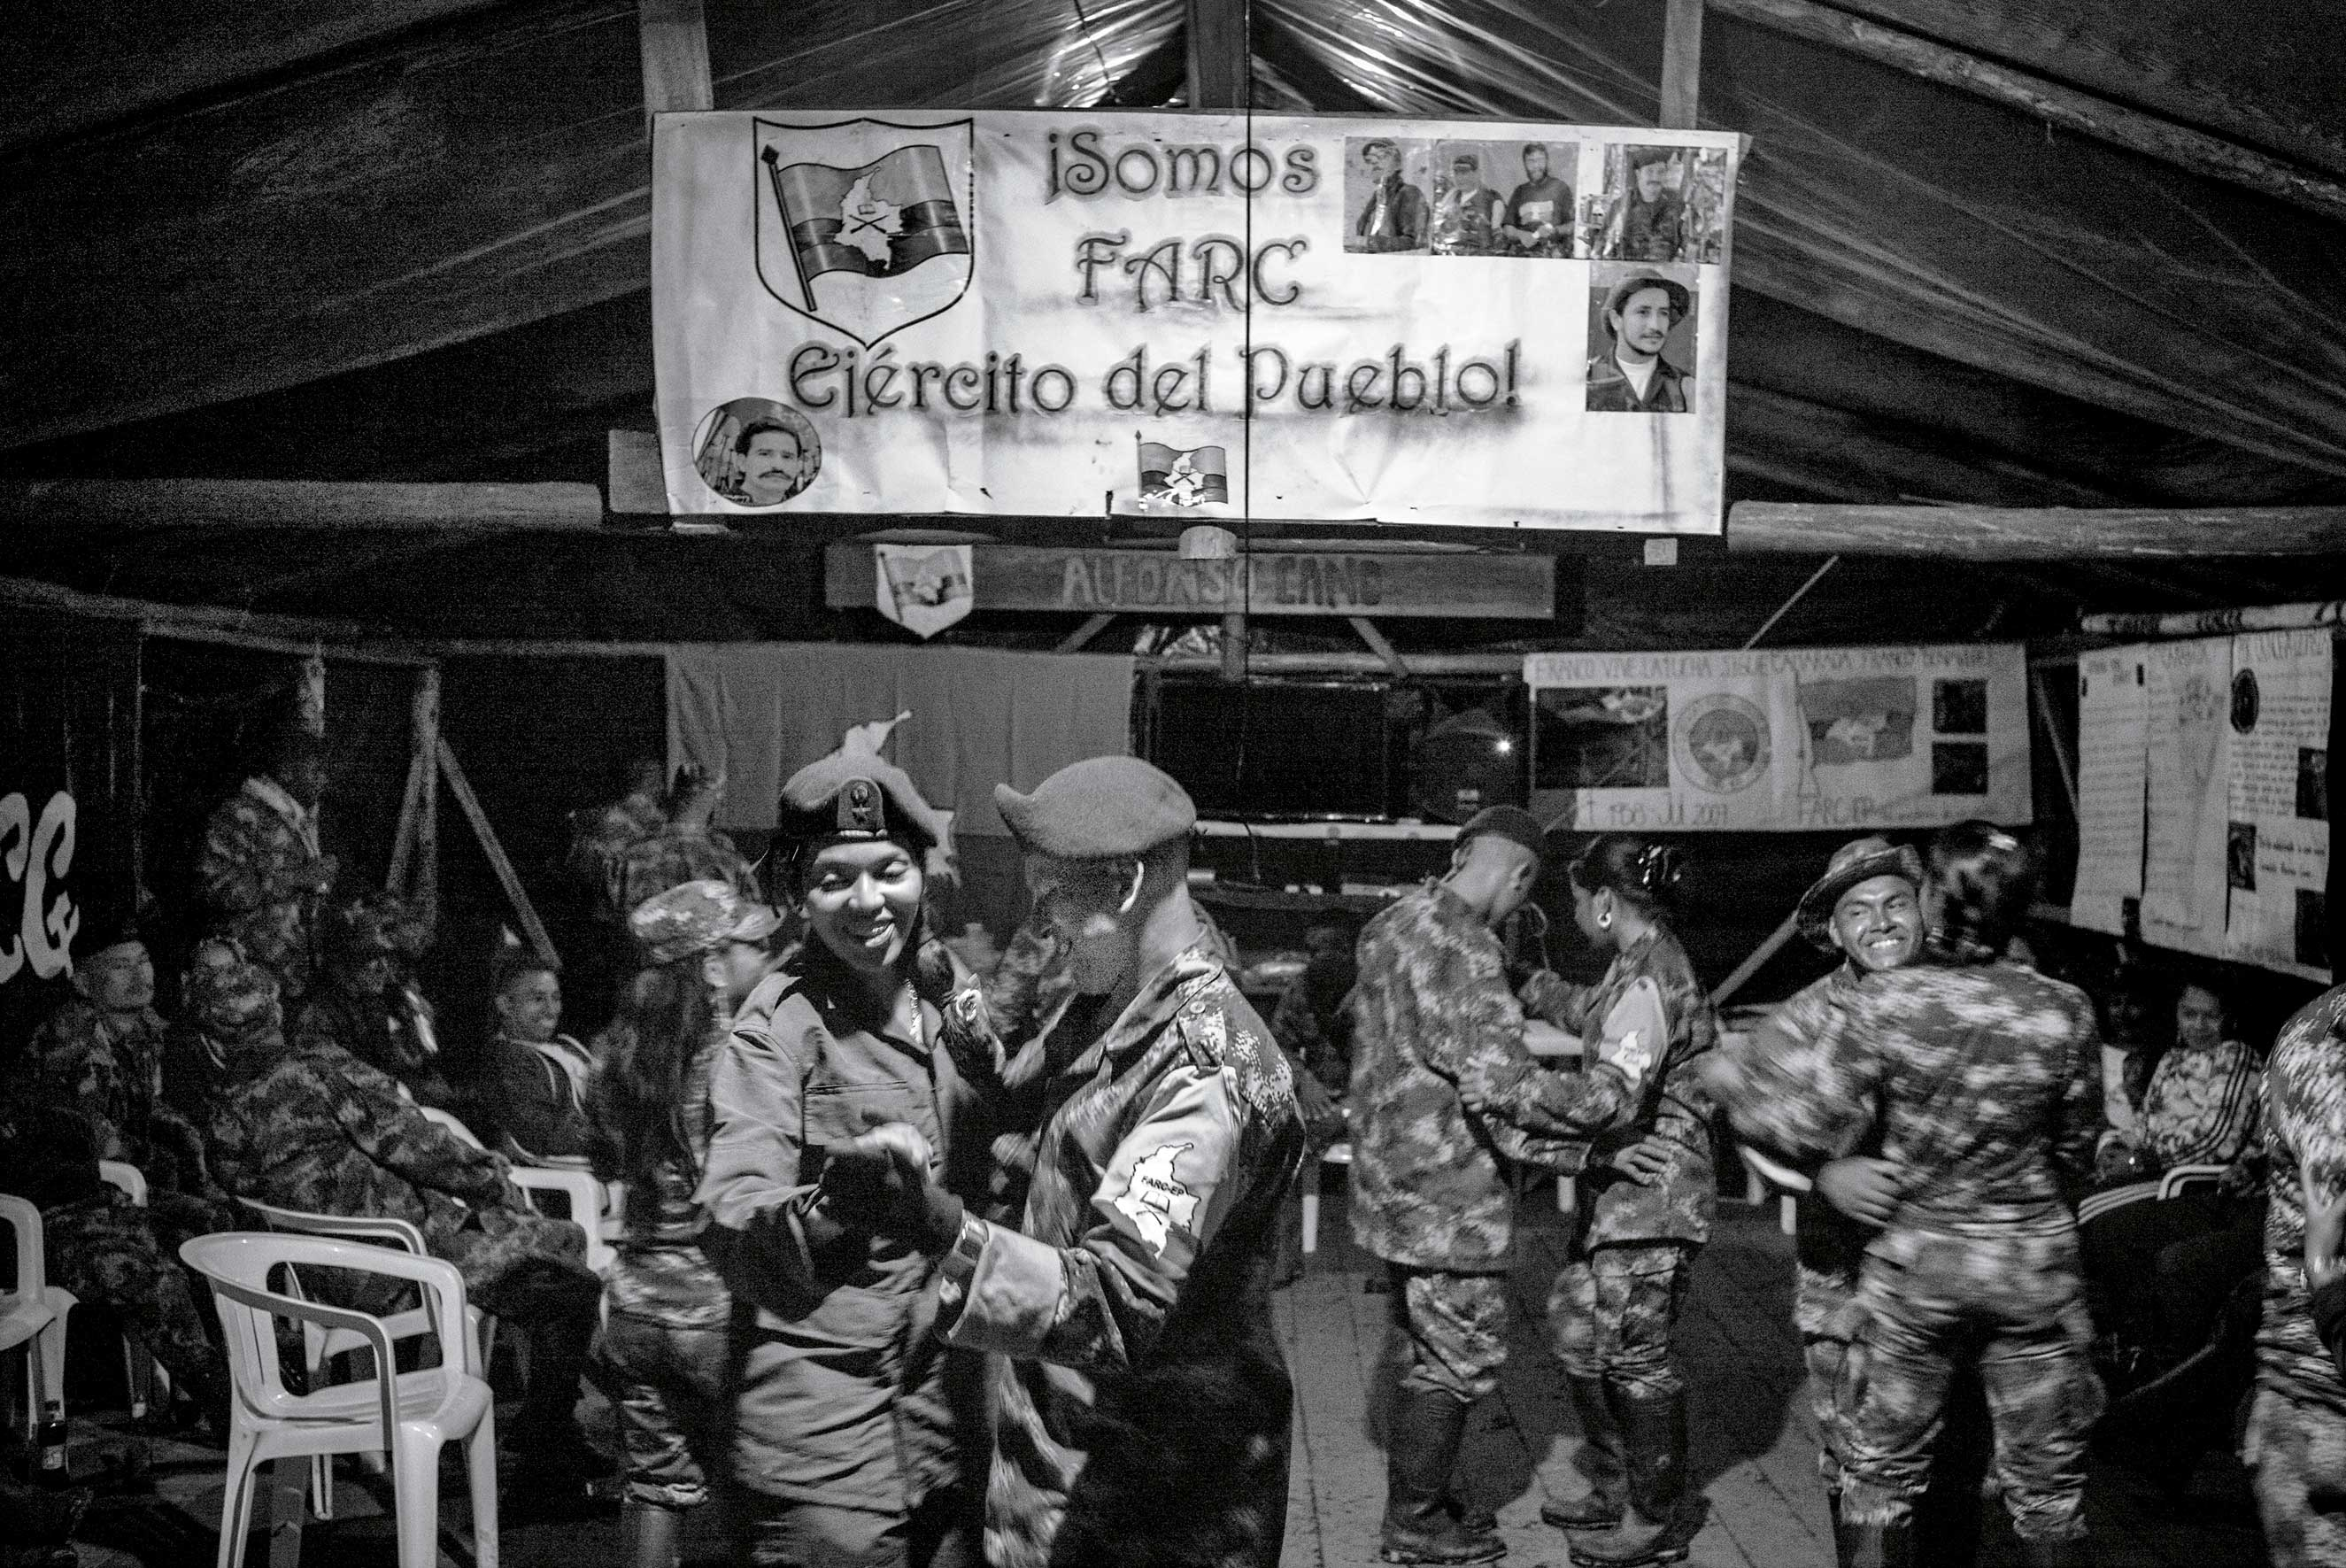 Male and female FARC fighters dance during a party in July at one of their camps in rural Colombia